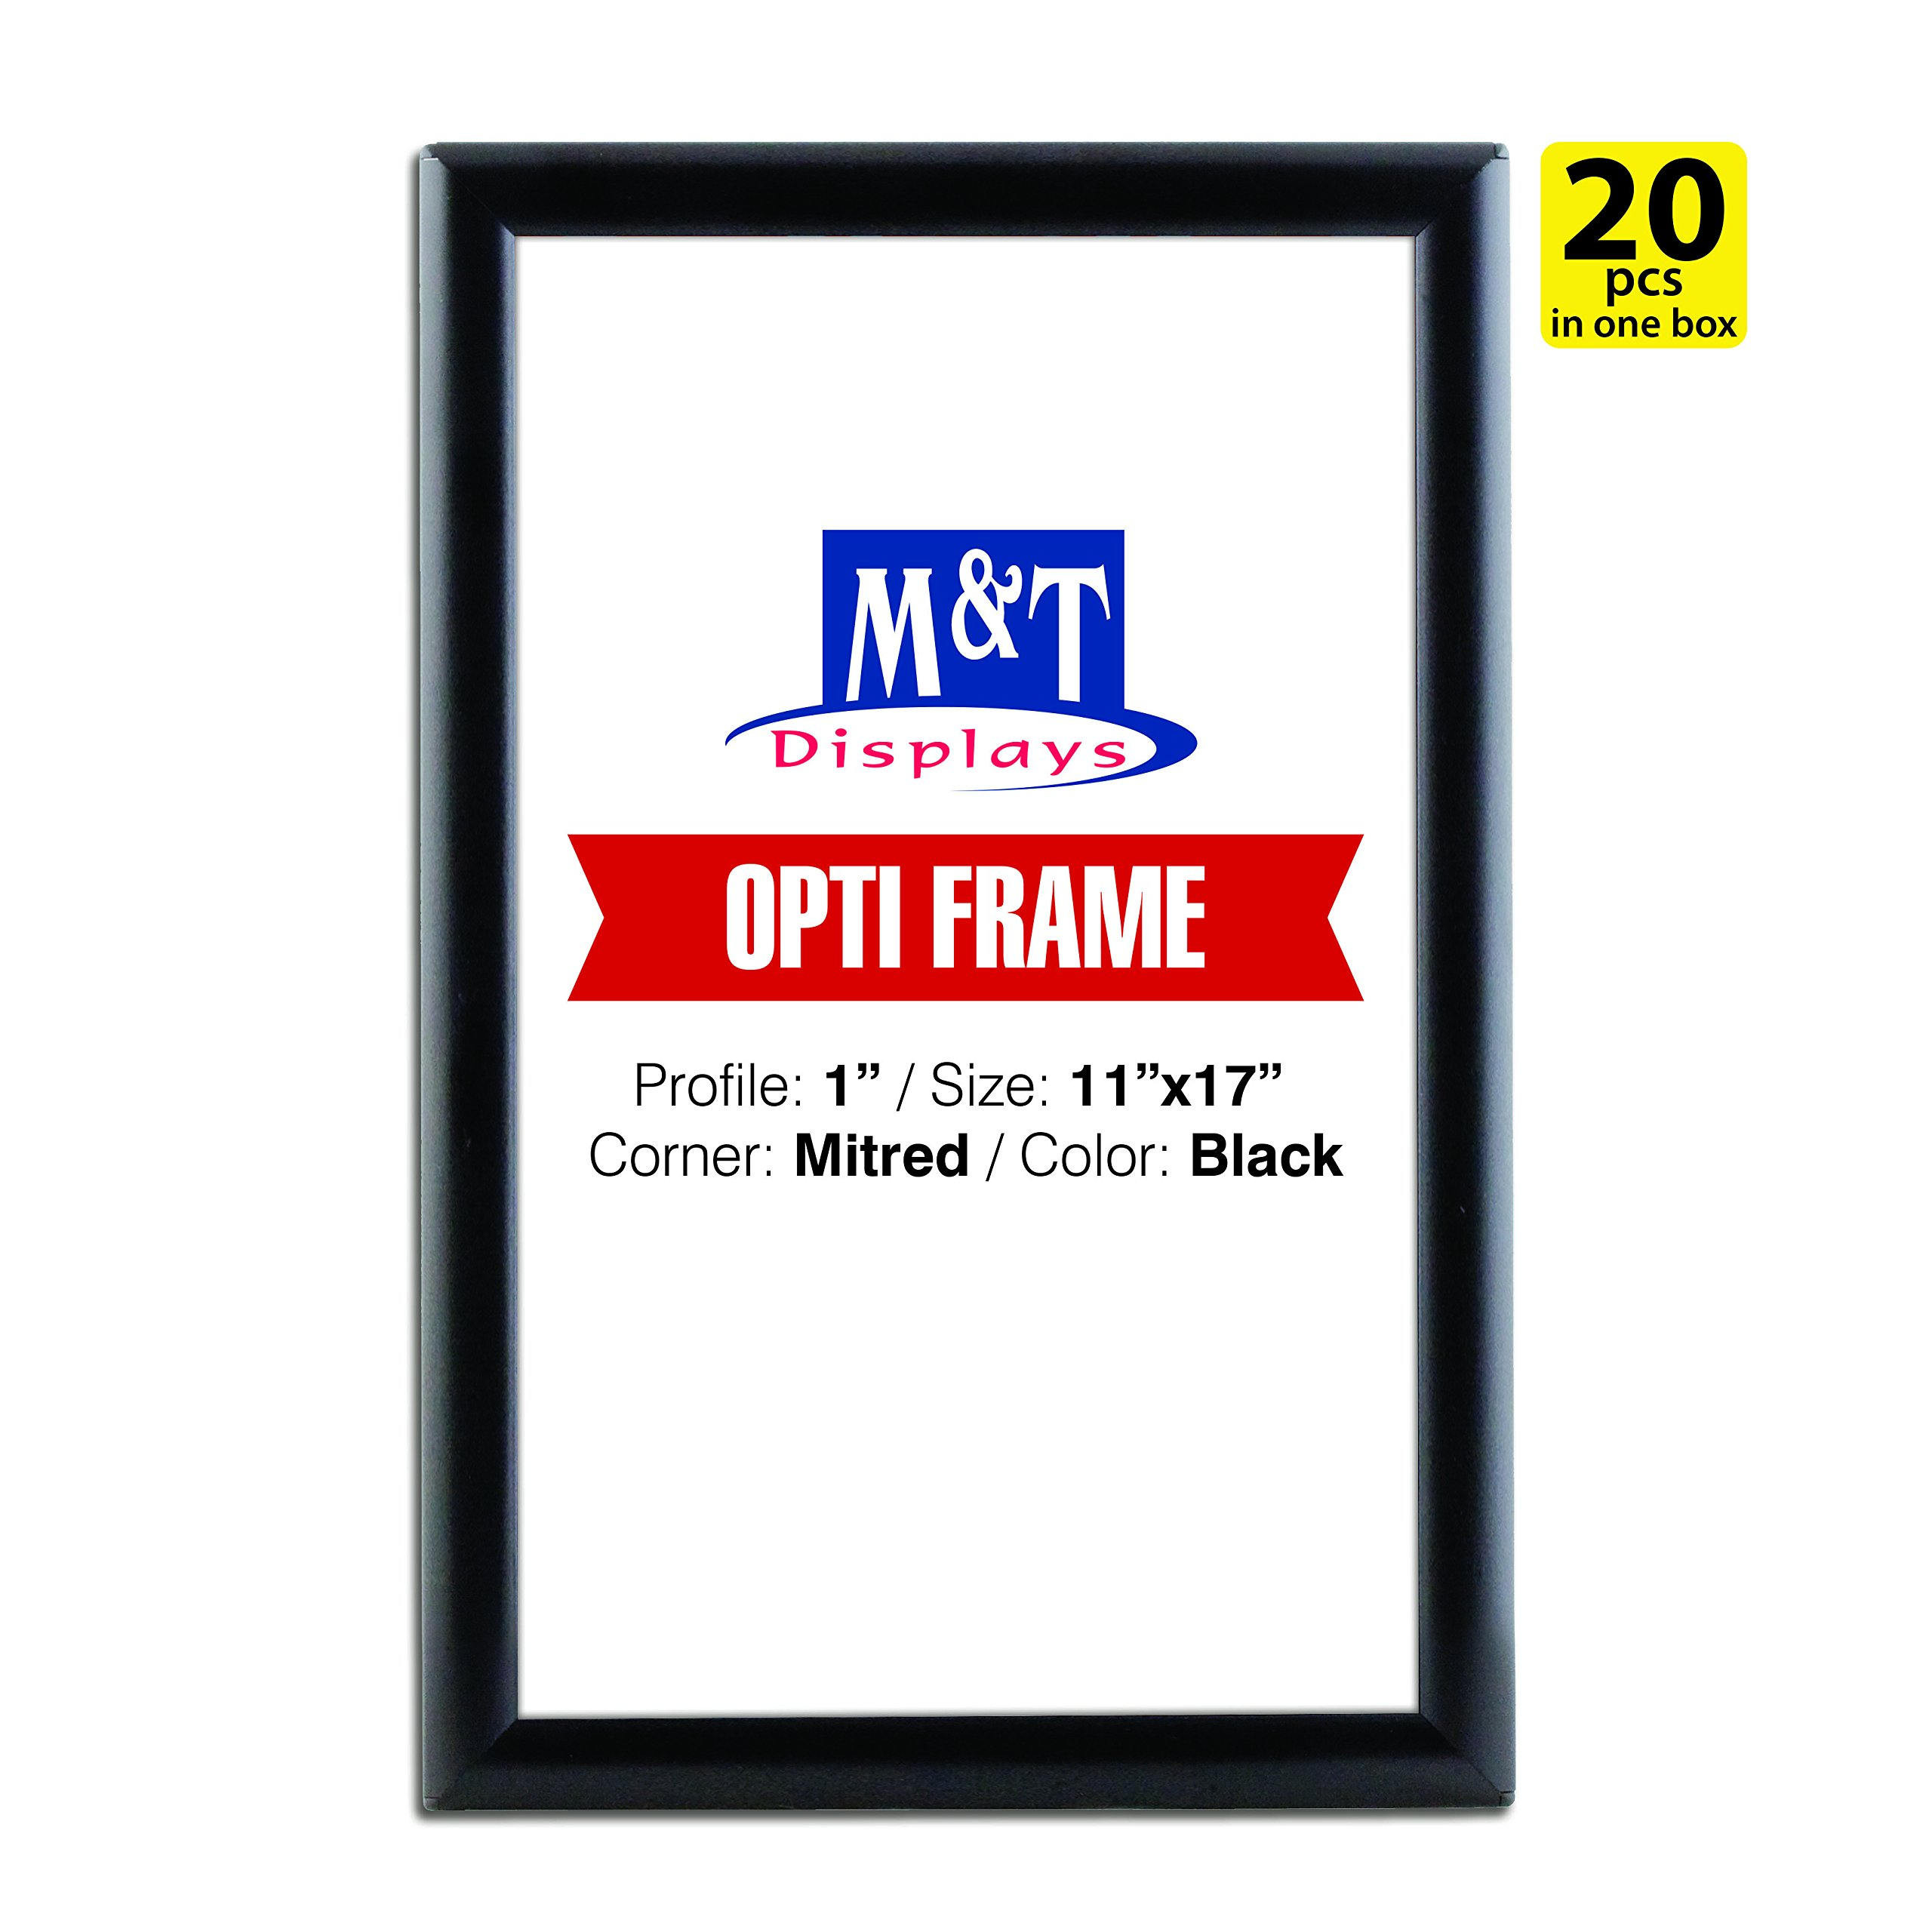 M&T Displays11x17 Snap Poster Frame, 1'' Profile, Aluminum, Wall Mounted - Black / 20pcs / Front Loading